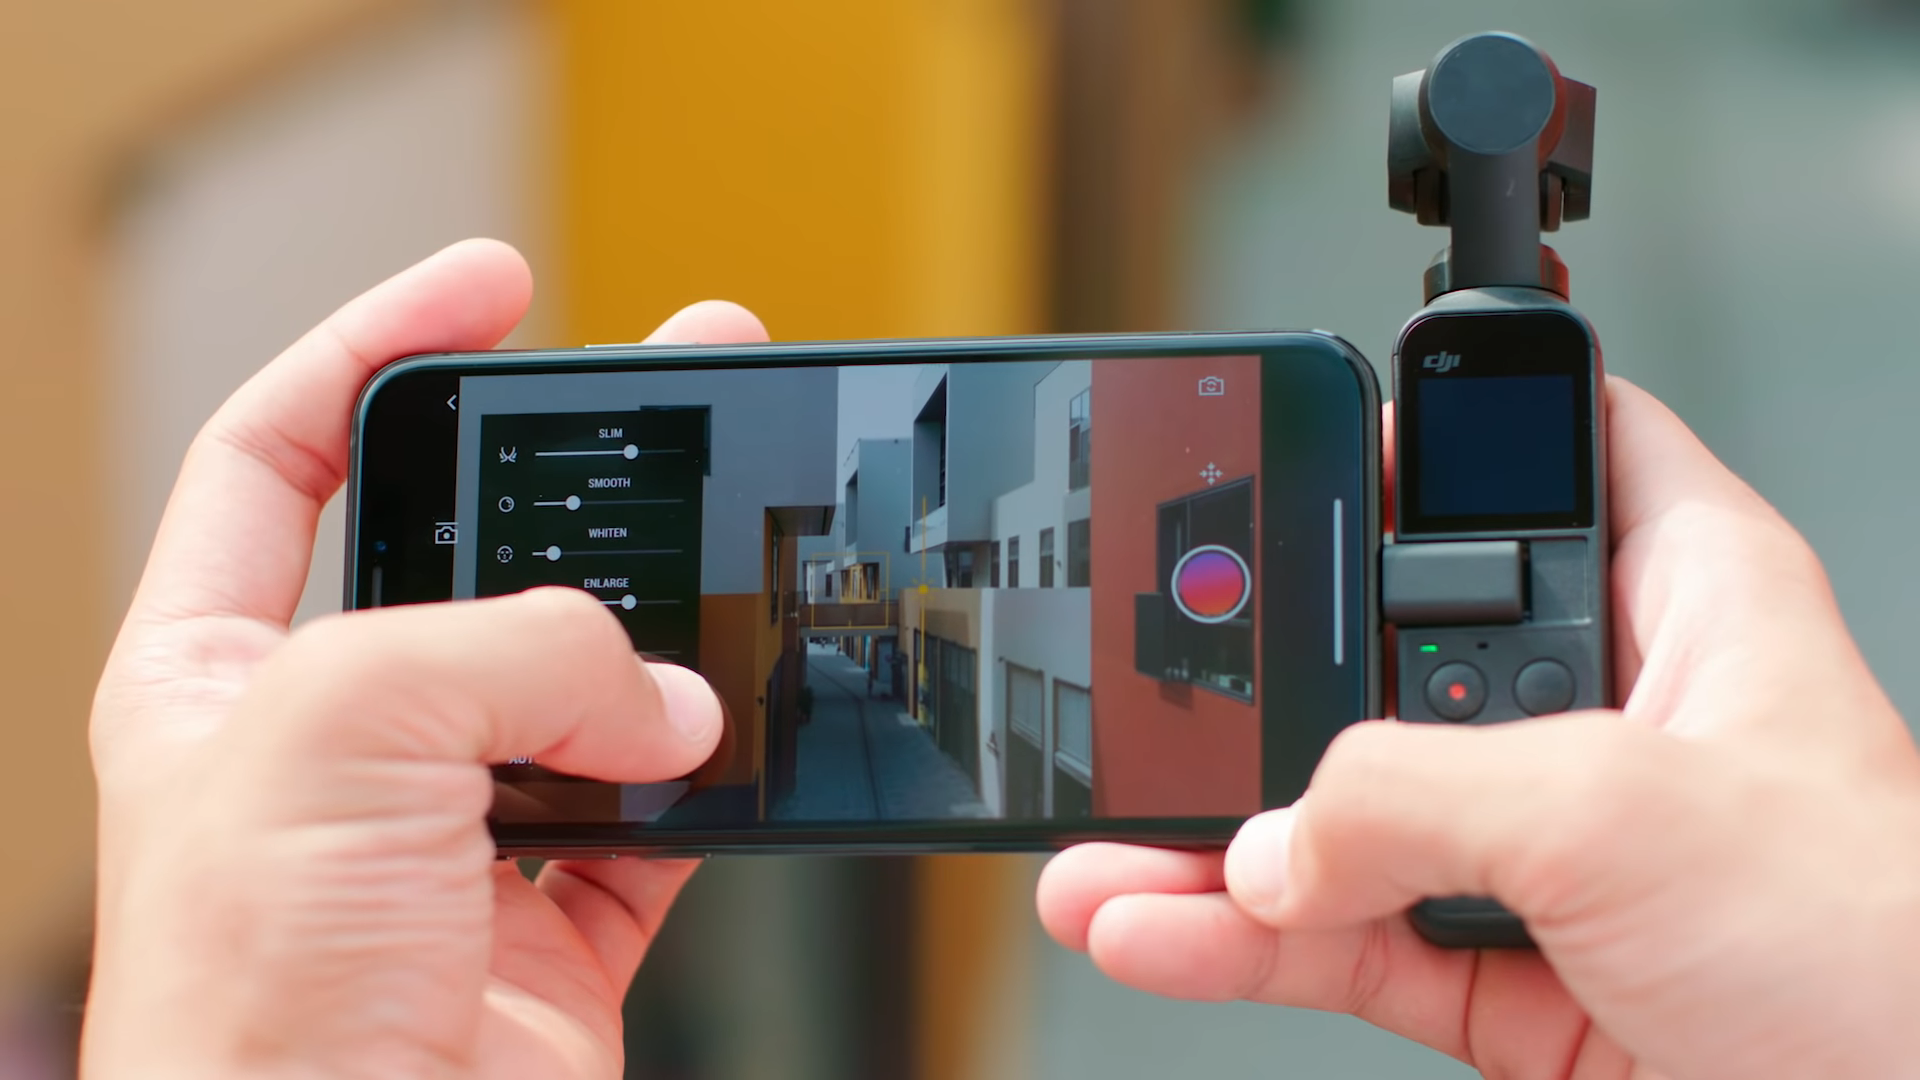 using beautify tool settings in dji mimo app for the osmo pocket